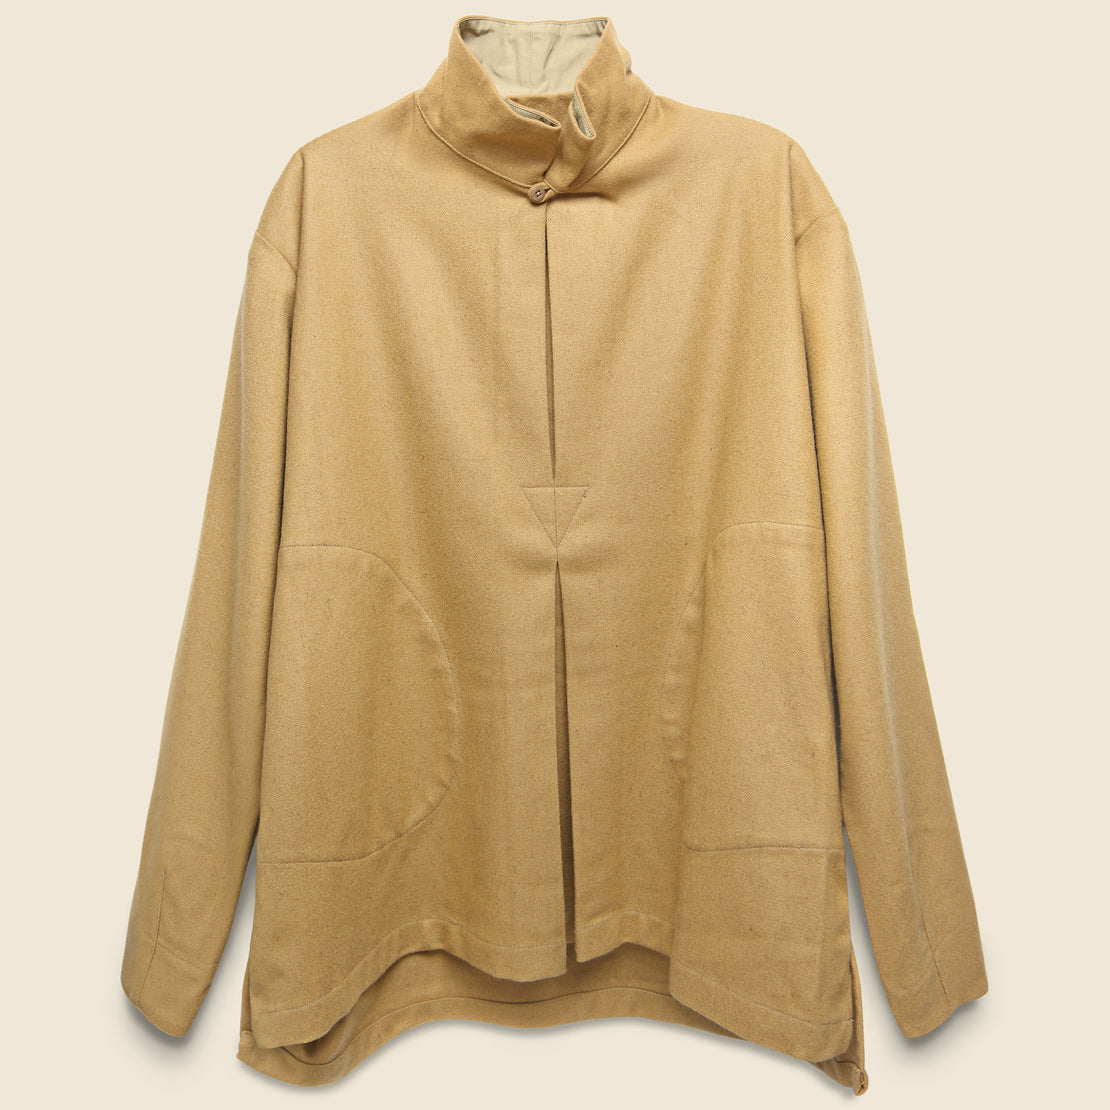 Monitaly Wool/Flannel Invert Pullover - Camel